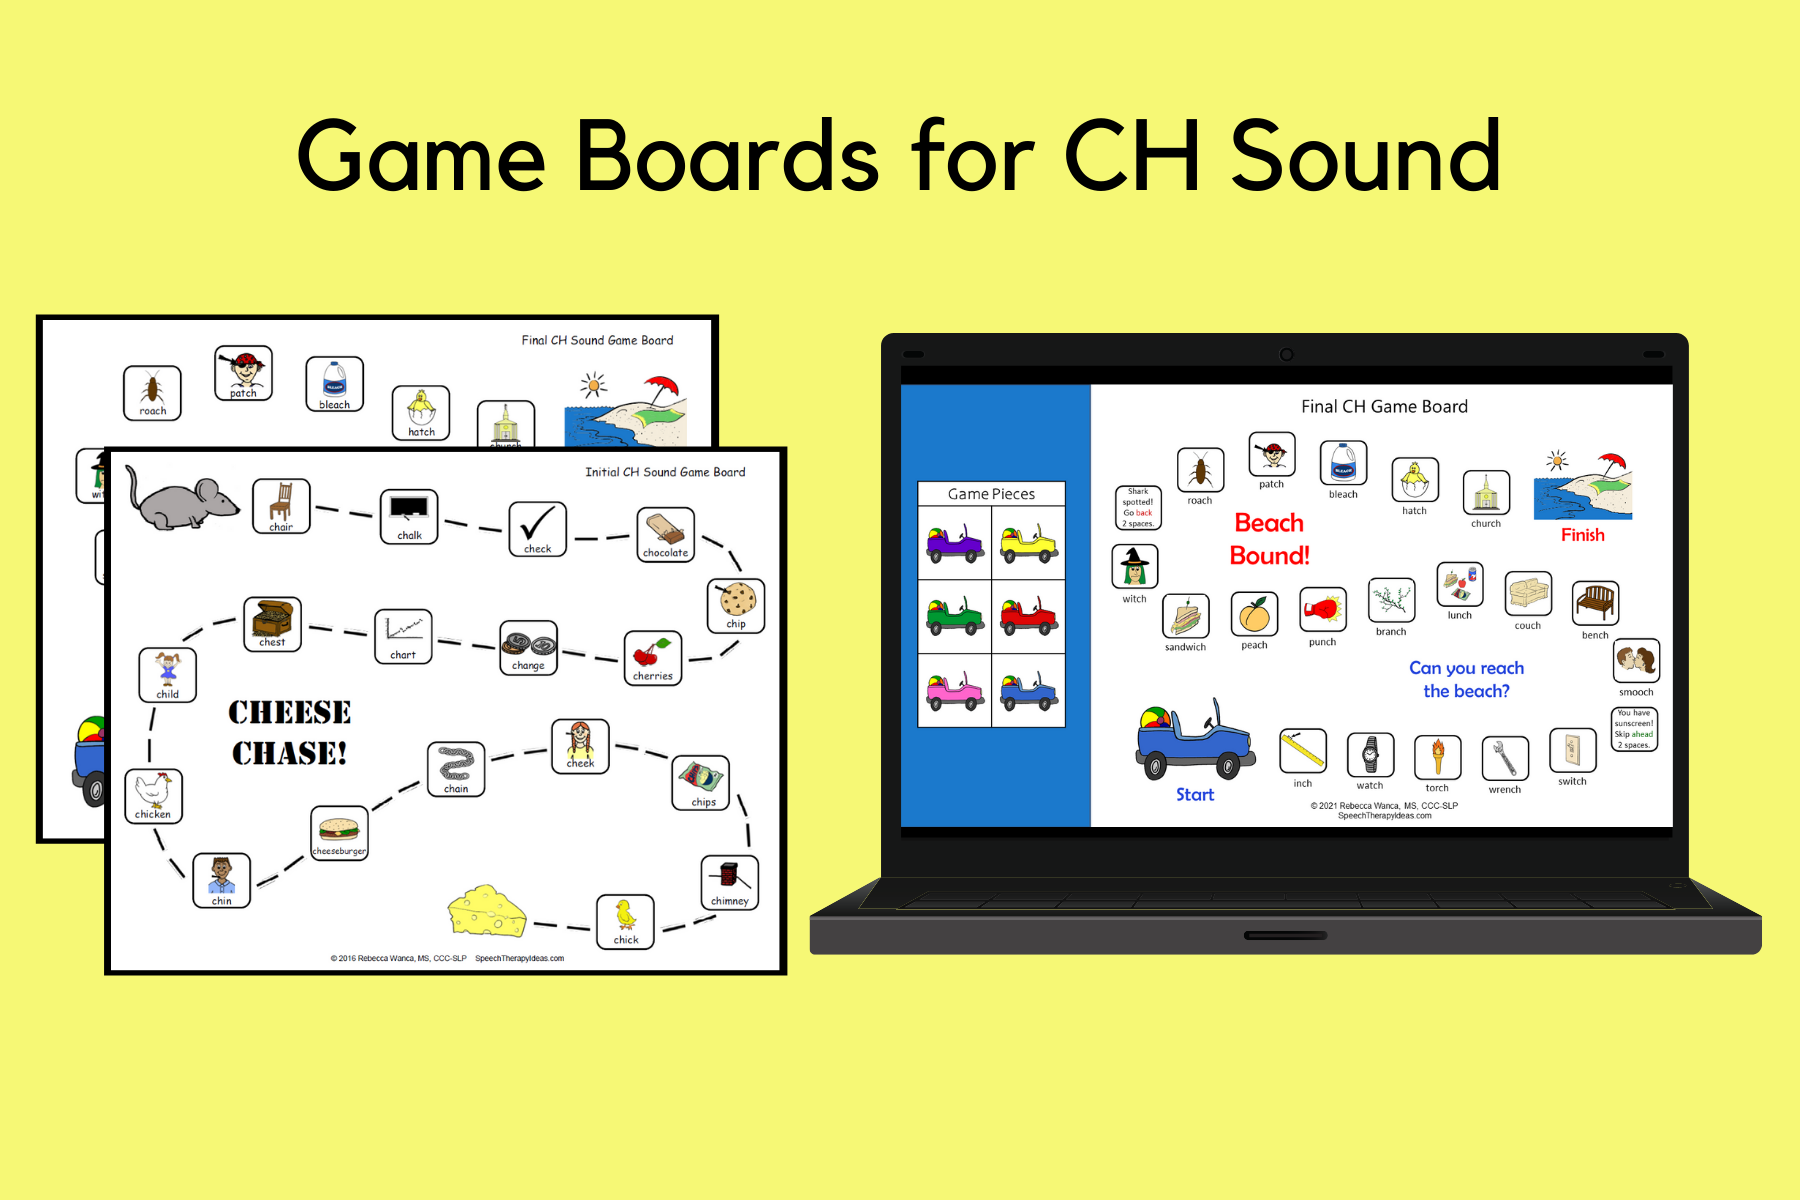 Game Boards for CH Sound